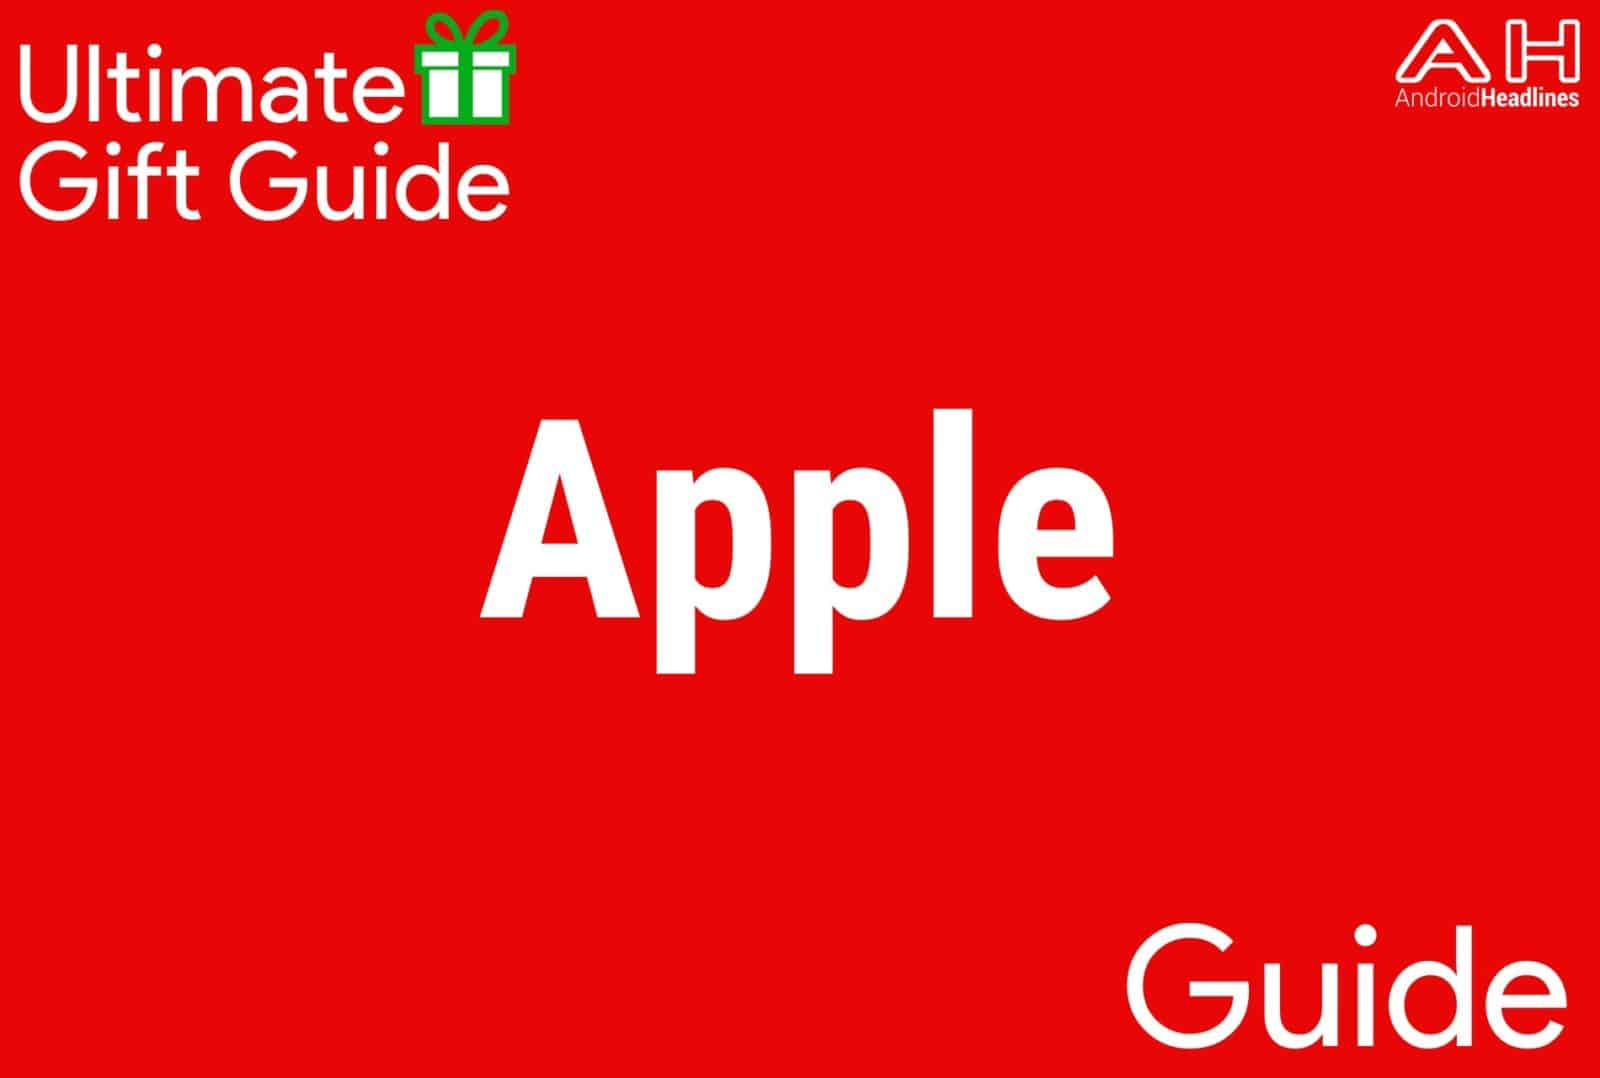 Apple Products - Gift Guide 2015